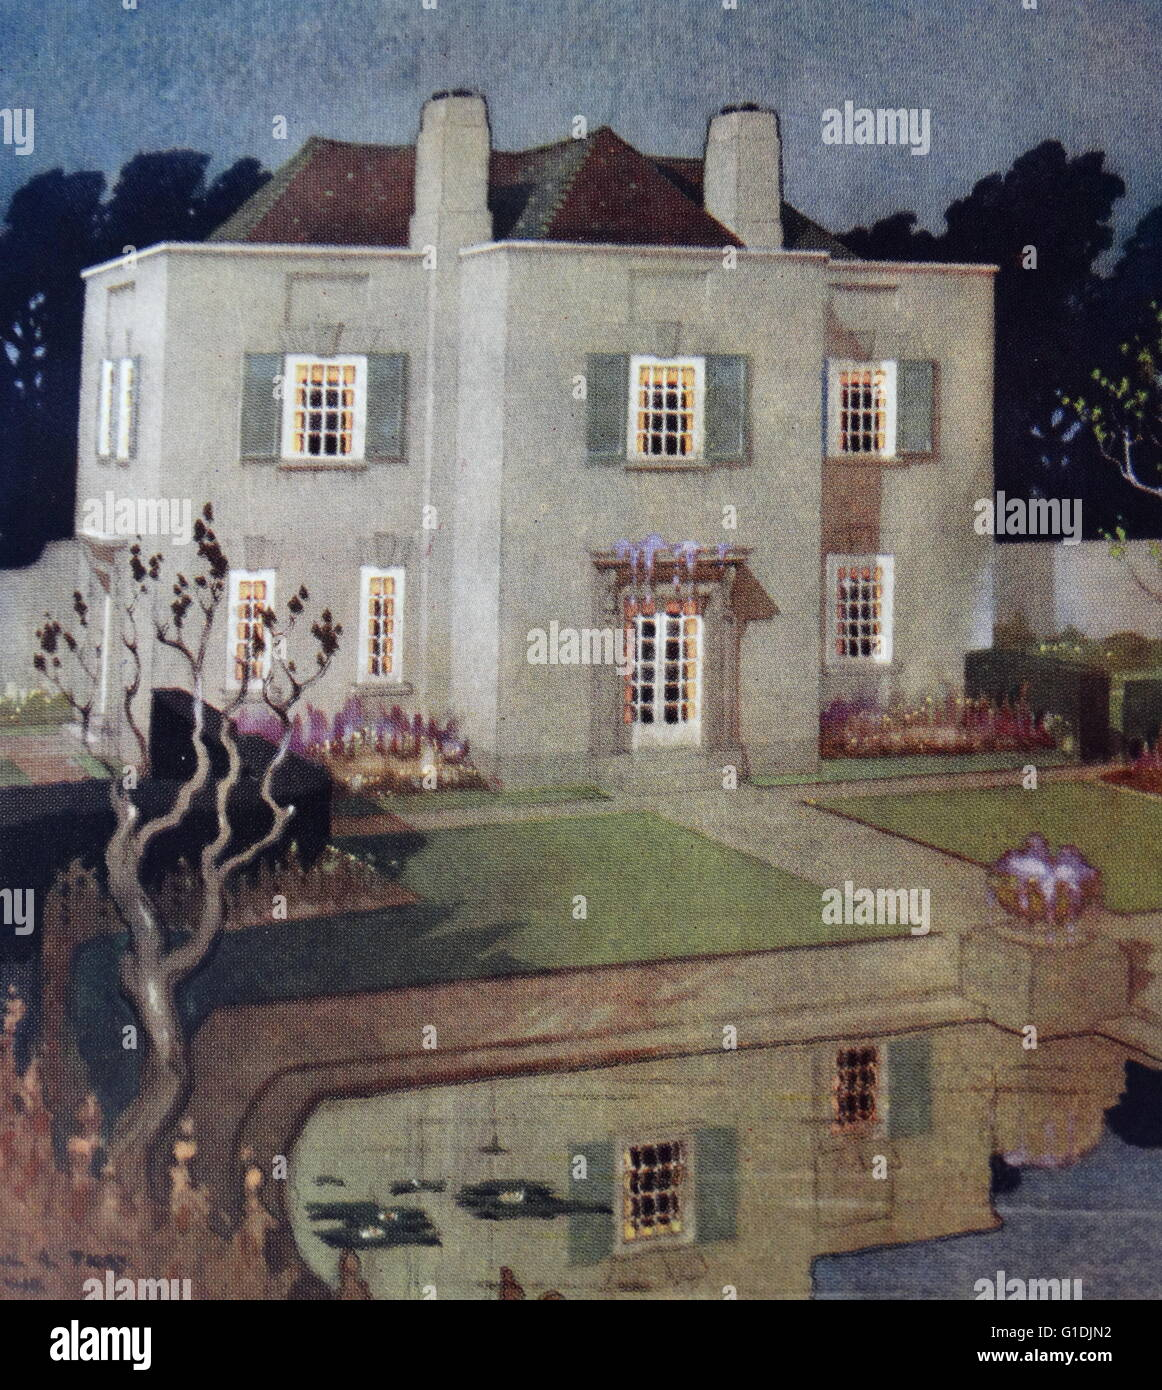 Painting of a house in Hampstead Garden Suburb, London - Stock Image